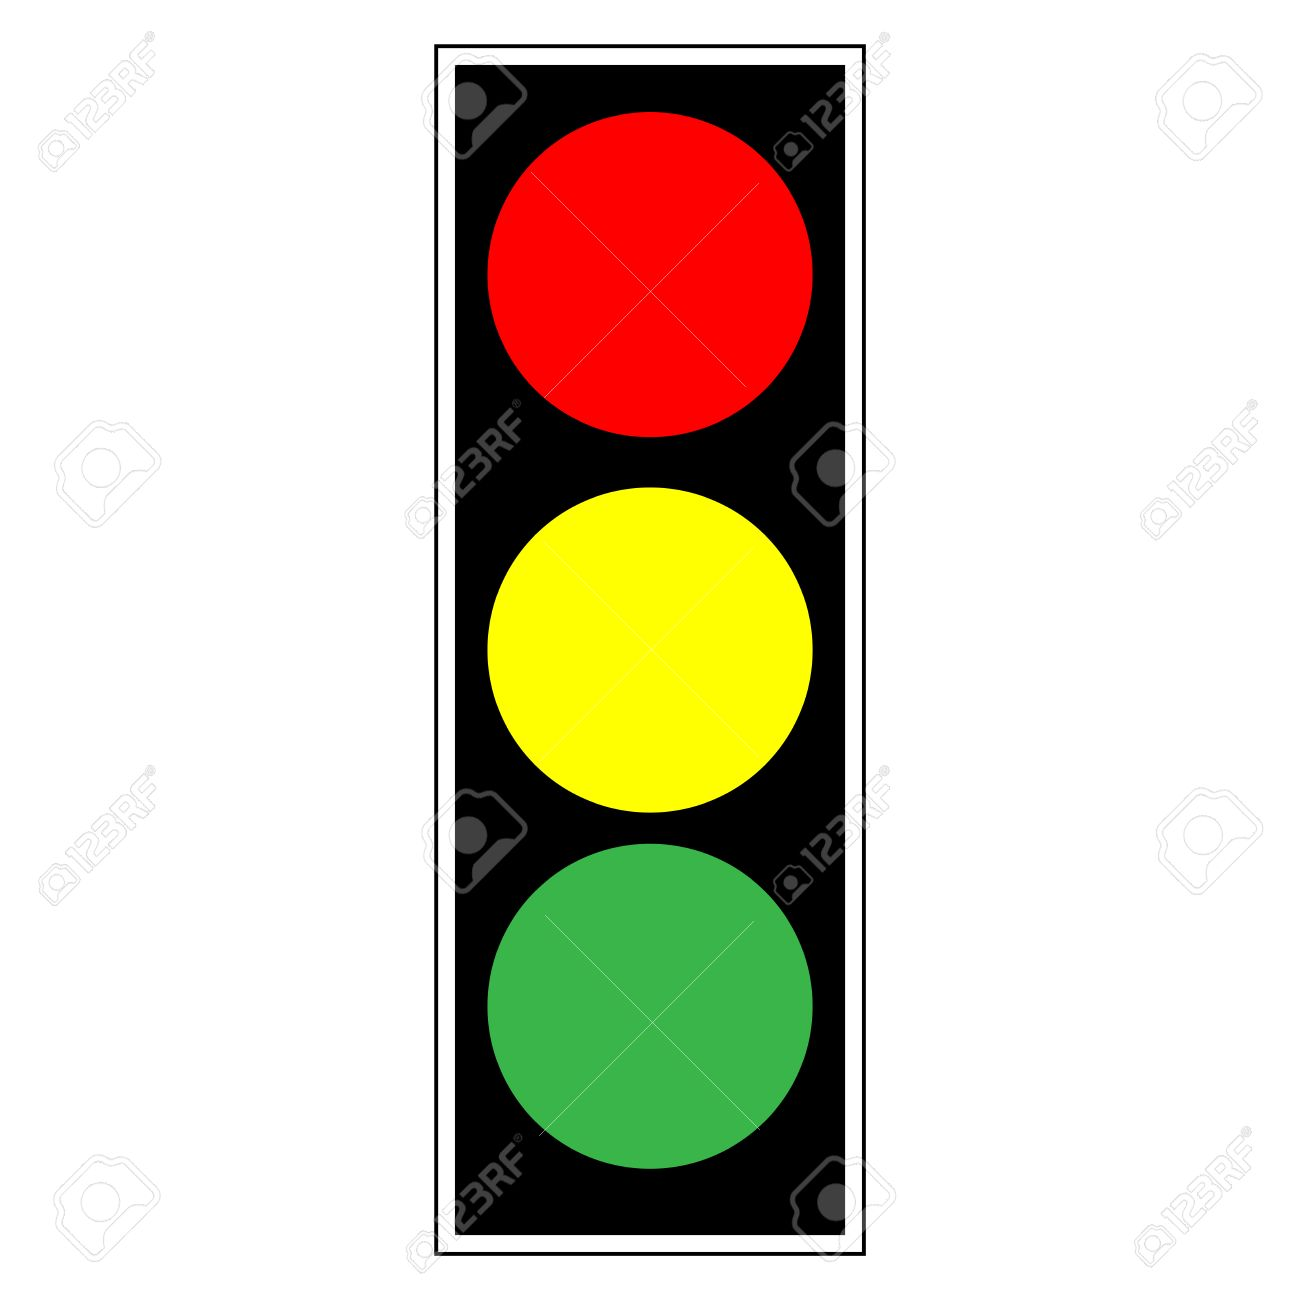 Traffic Light Sign. Icon Stoplight In Black Rectangle On White ... for Traffic Light Yellow Icon  279cpg